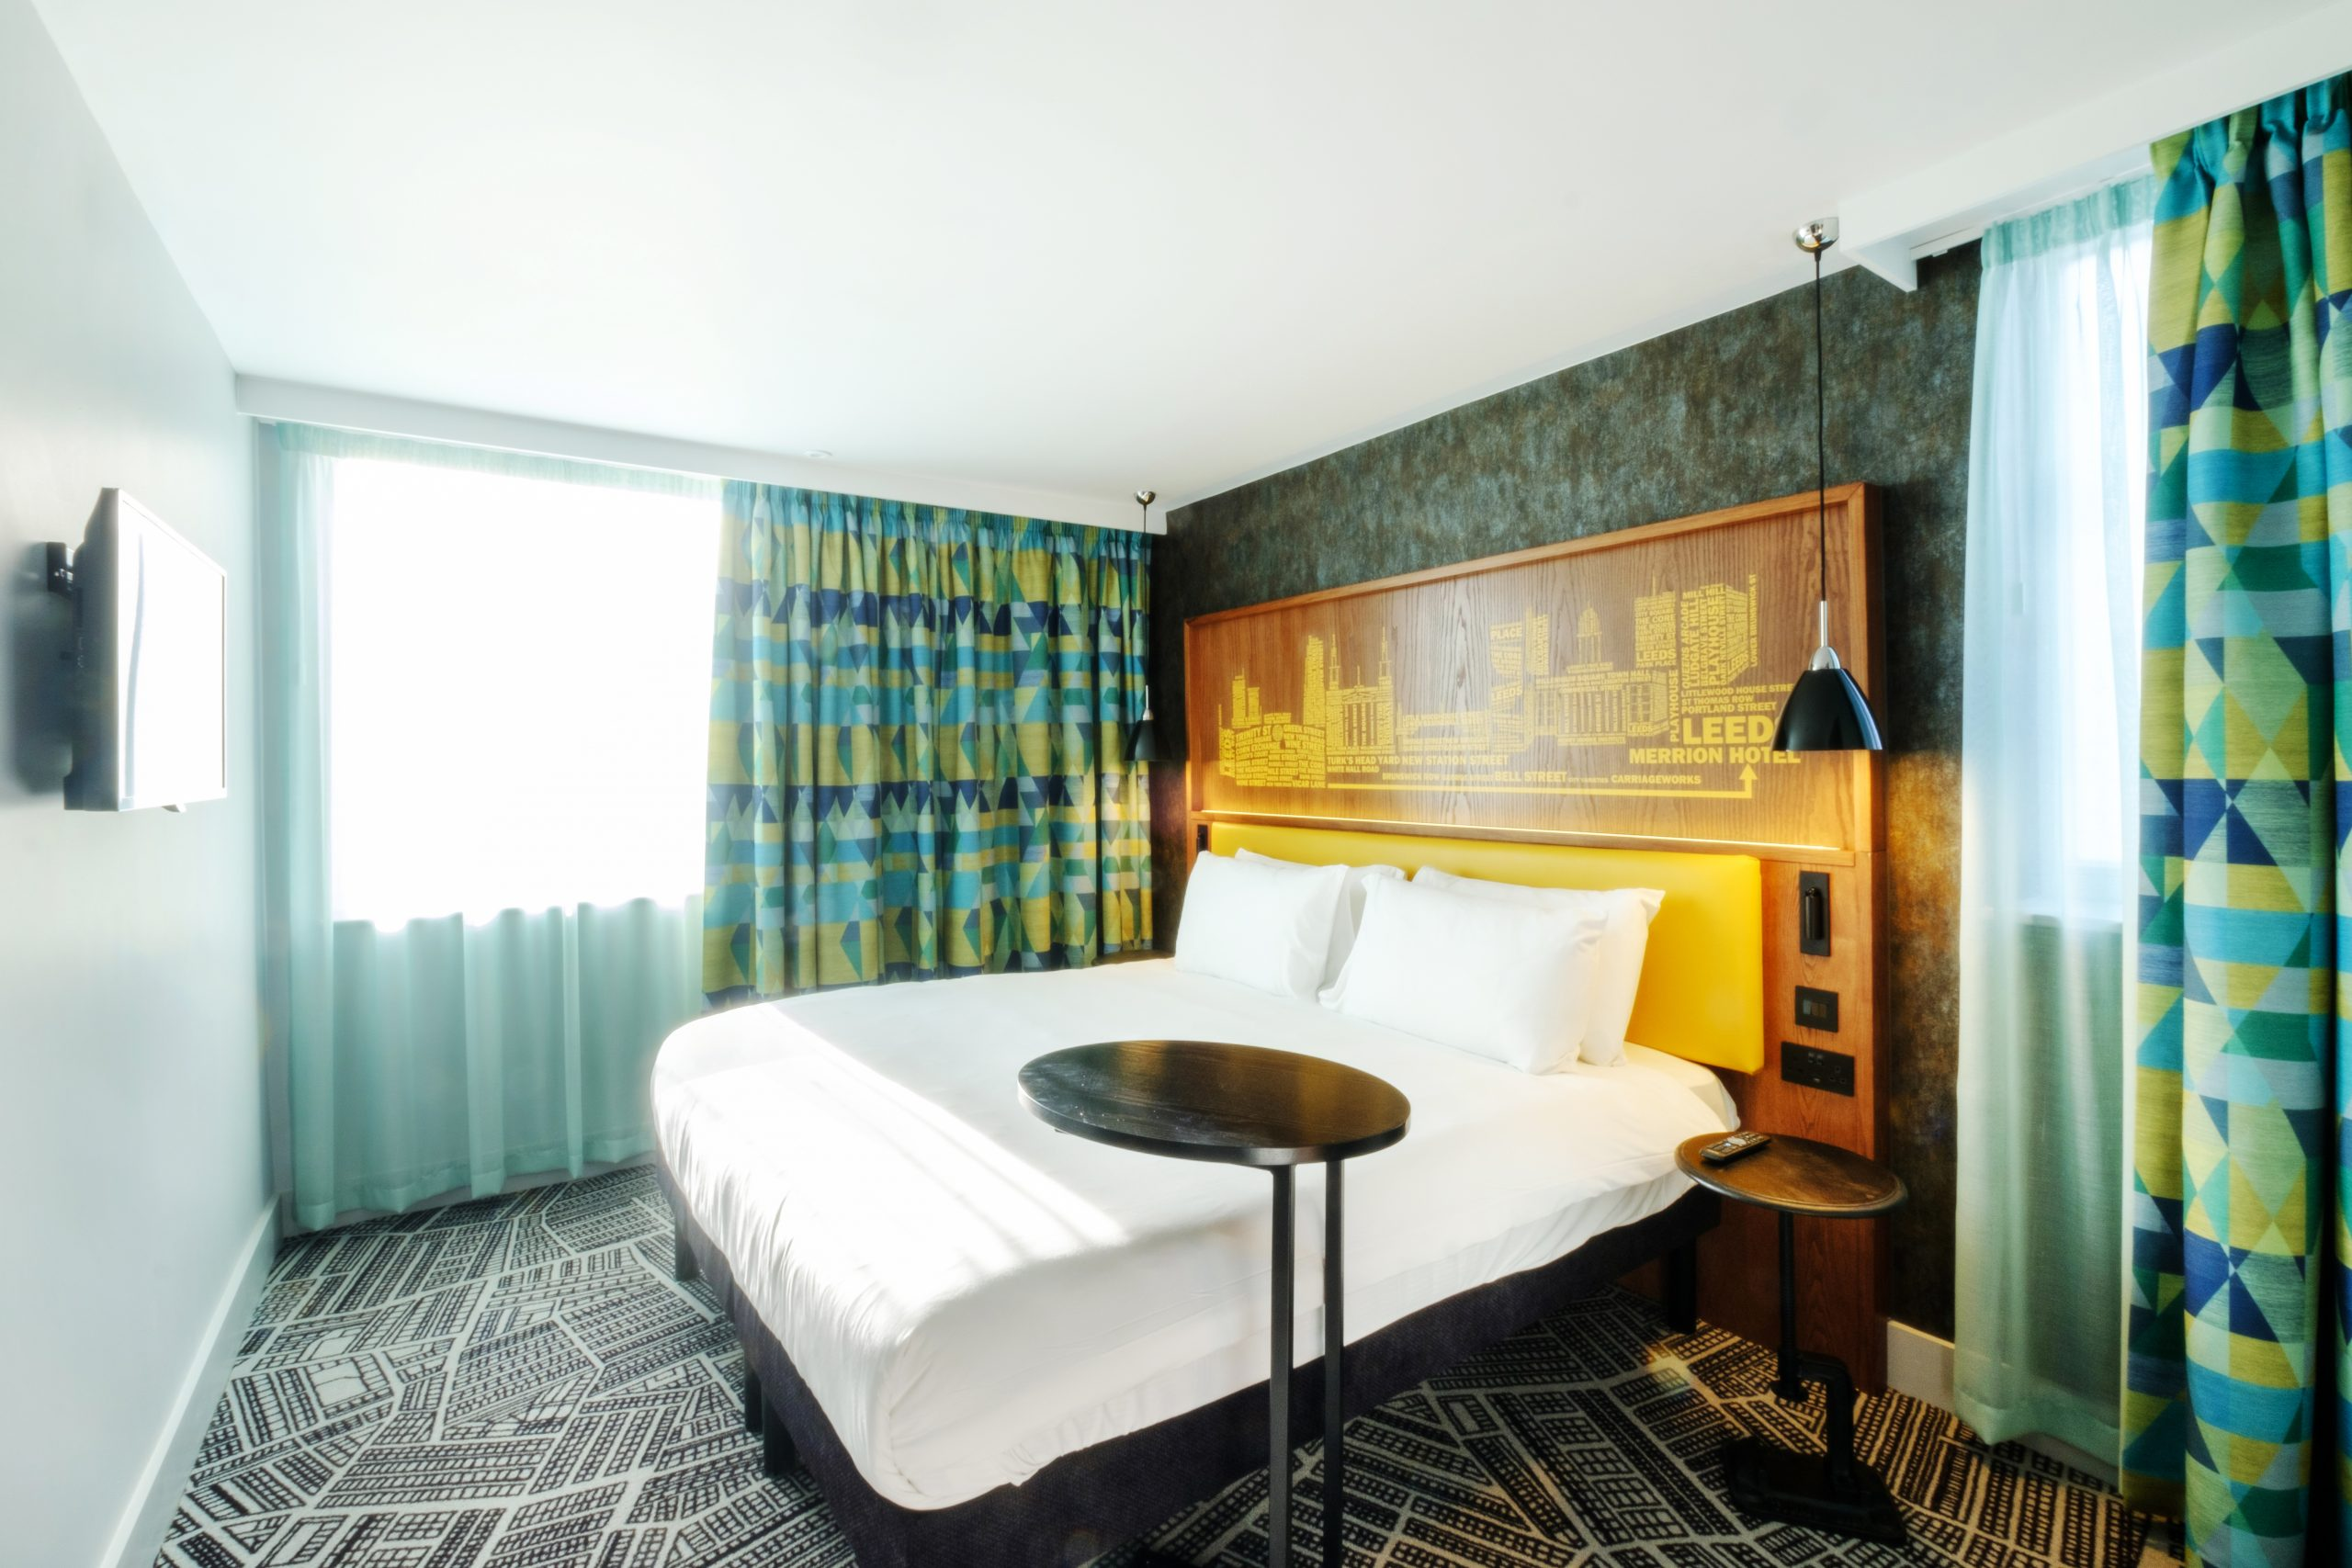 Ibis Styles bedroom - credit Evoke Pictures